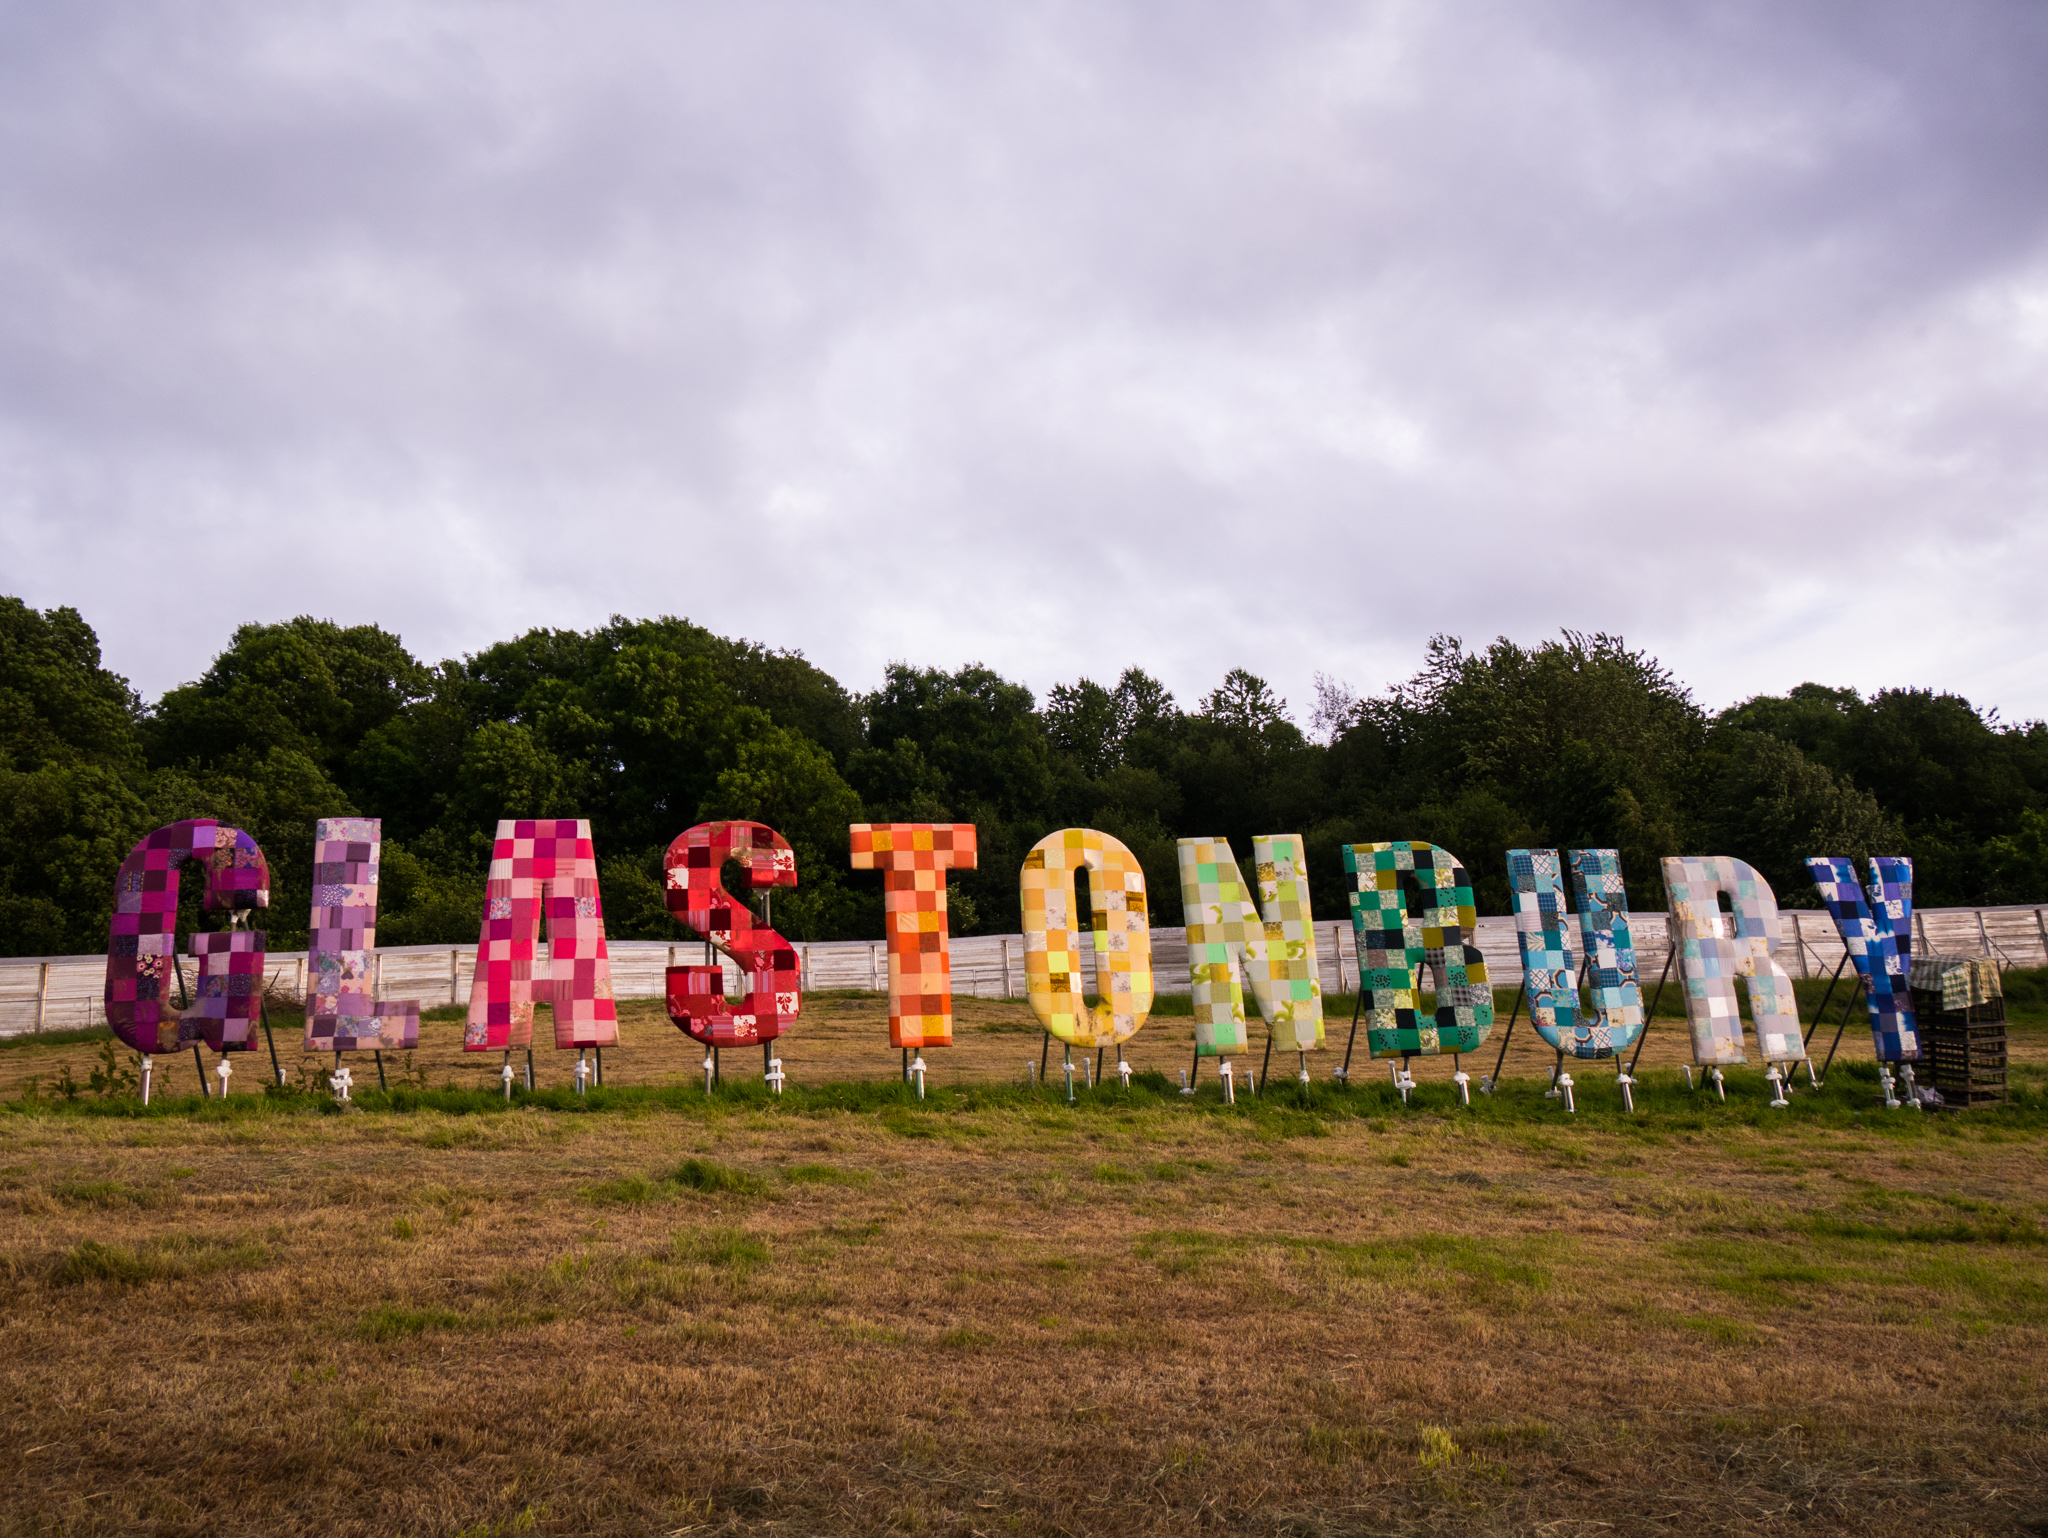 A sneak peek at Glastonbury Festival 2017 a week before the fun starts!